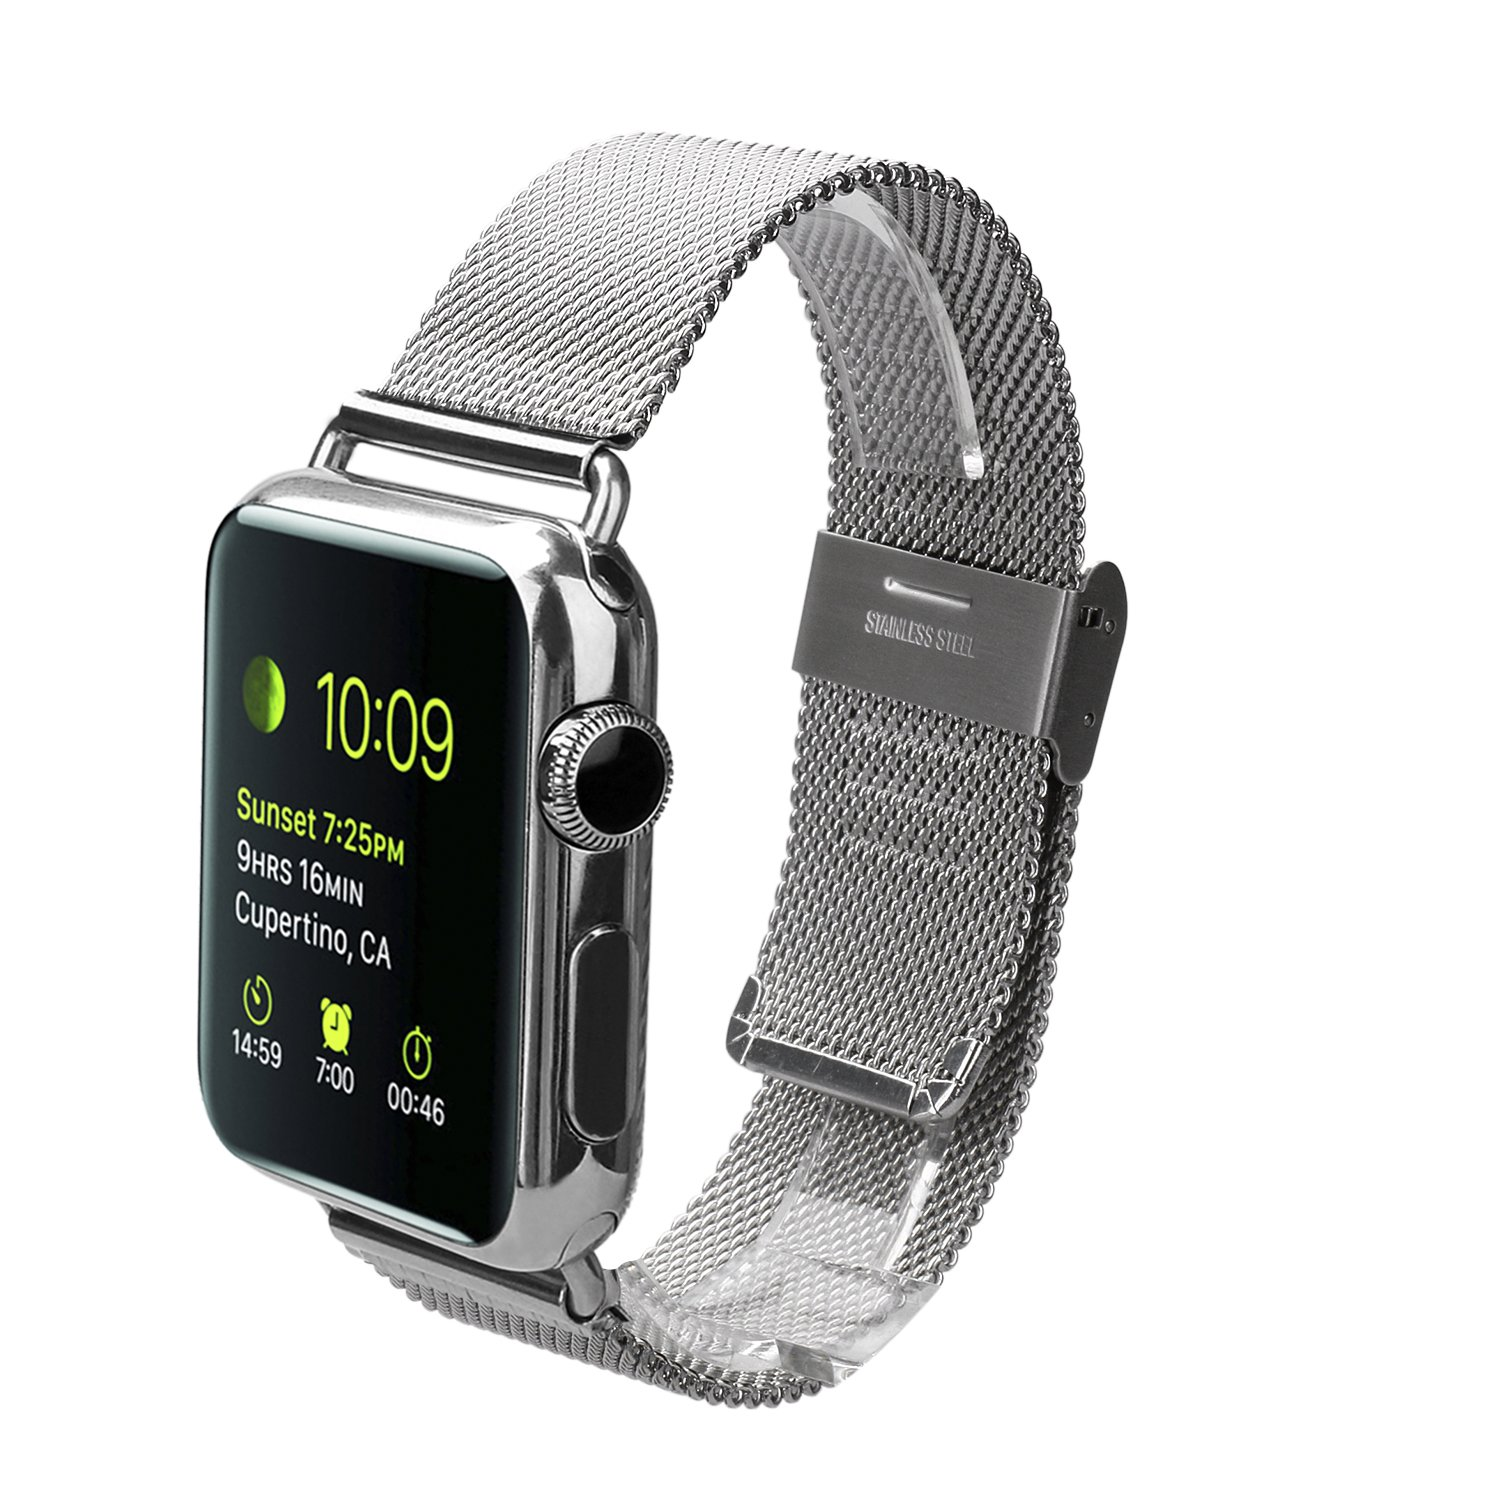 Apple Watch Band, Levin® Milanese Loop Stainless Steel Mesh Replacement Wrist Strap with Metal Connectors for Apple Watch 42mm Edition